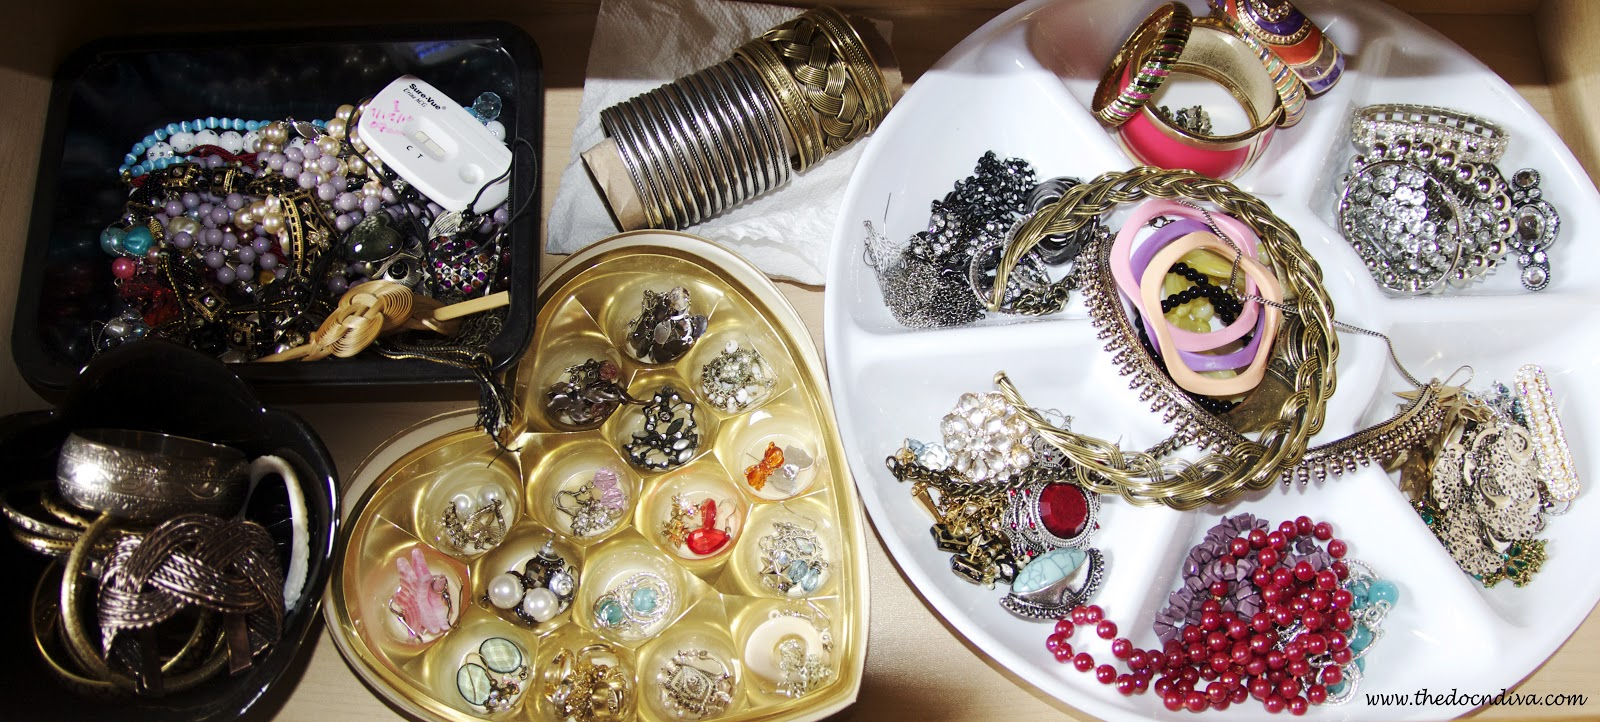 5 coolest and cheapest diy jewelry organizing ideas do it yourself the heart shaped container is a ferrero rocher chocolate container white circular one is a divided salad tray from dollar store bought for a dollar solutioingenieria Choice Image